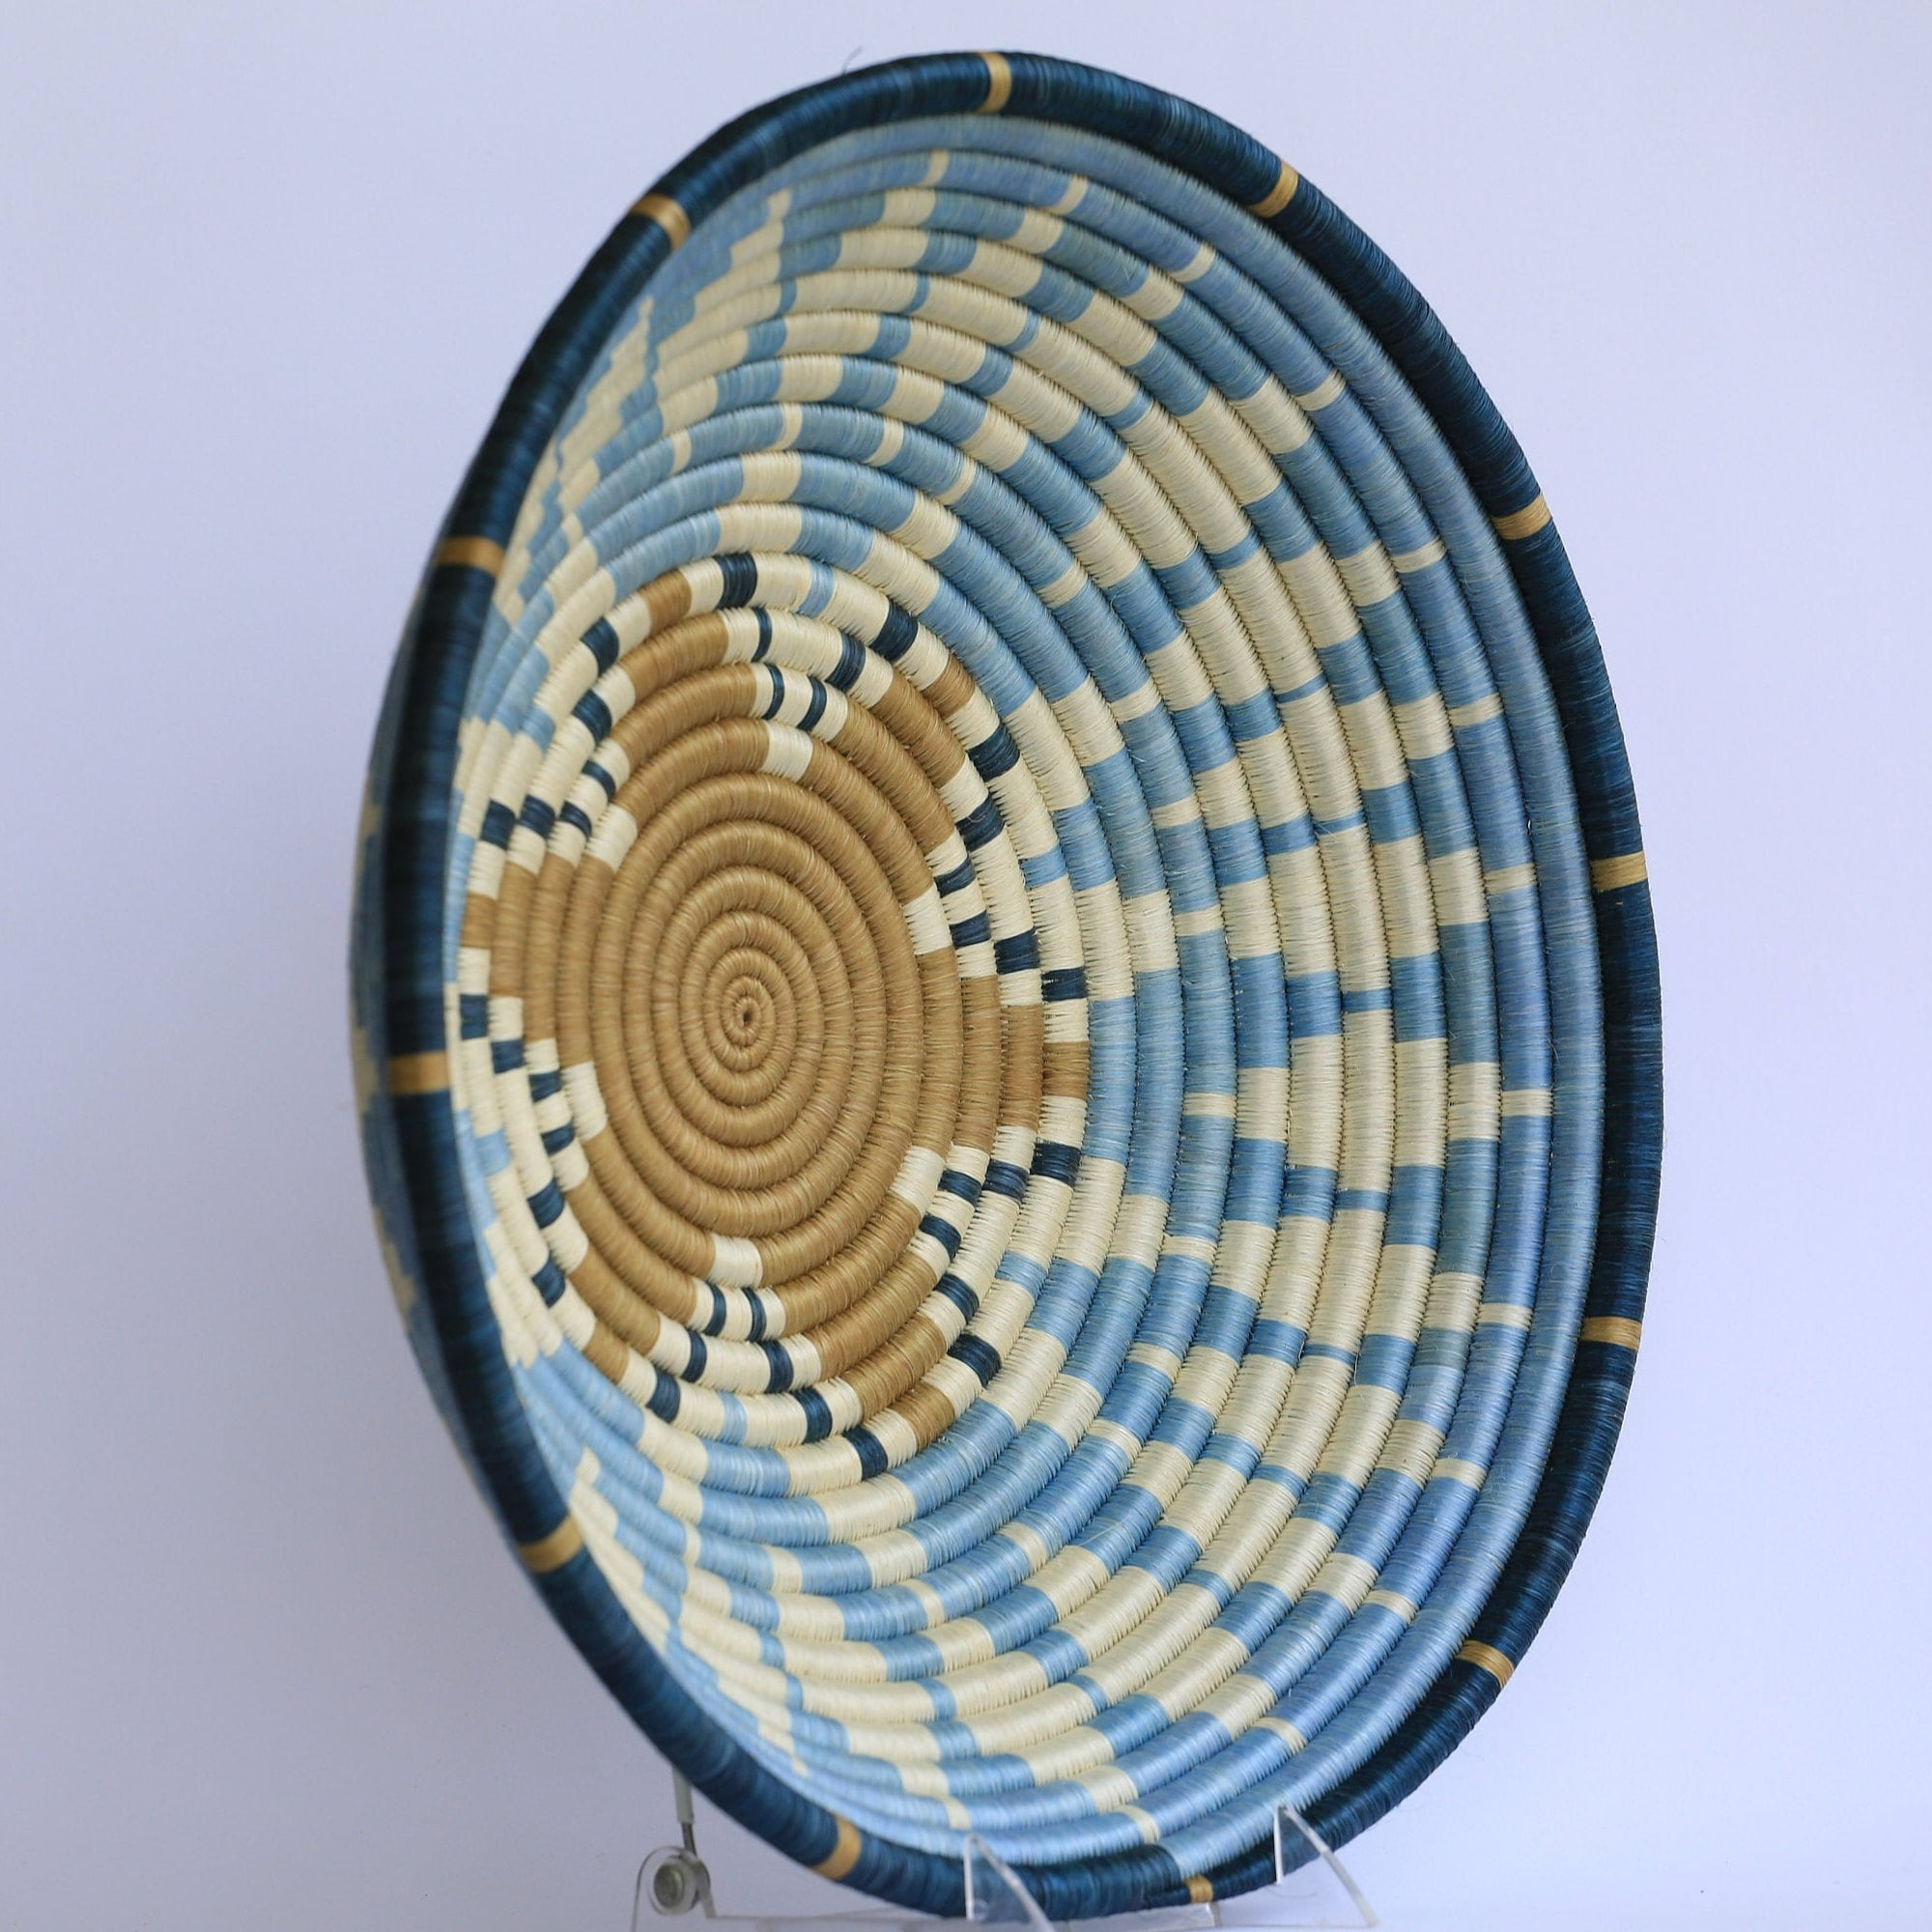 Mapambo African Wall Basket, Rwanda baskets, African Woven basket,  Sky blue, blue and brown - African Baskets , African Basket , Rwanda Baskets , Wall baskets Woven Basket